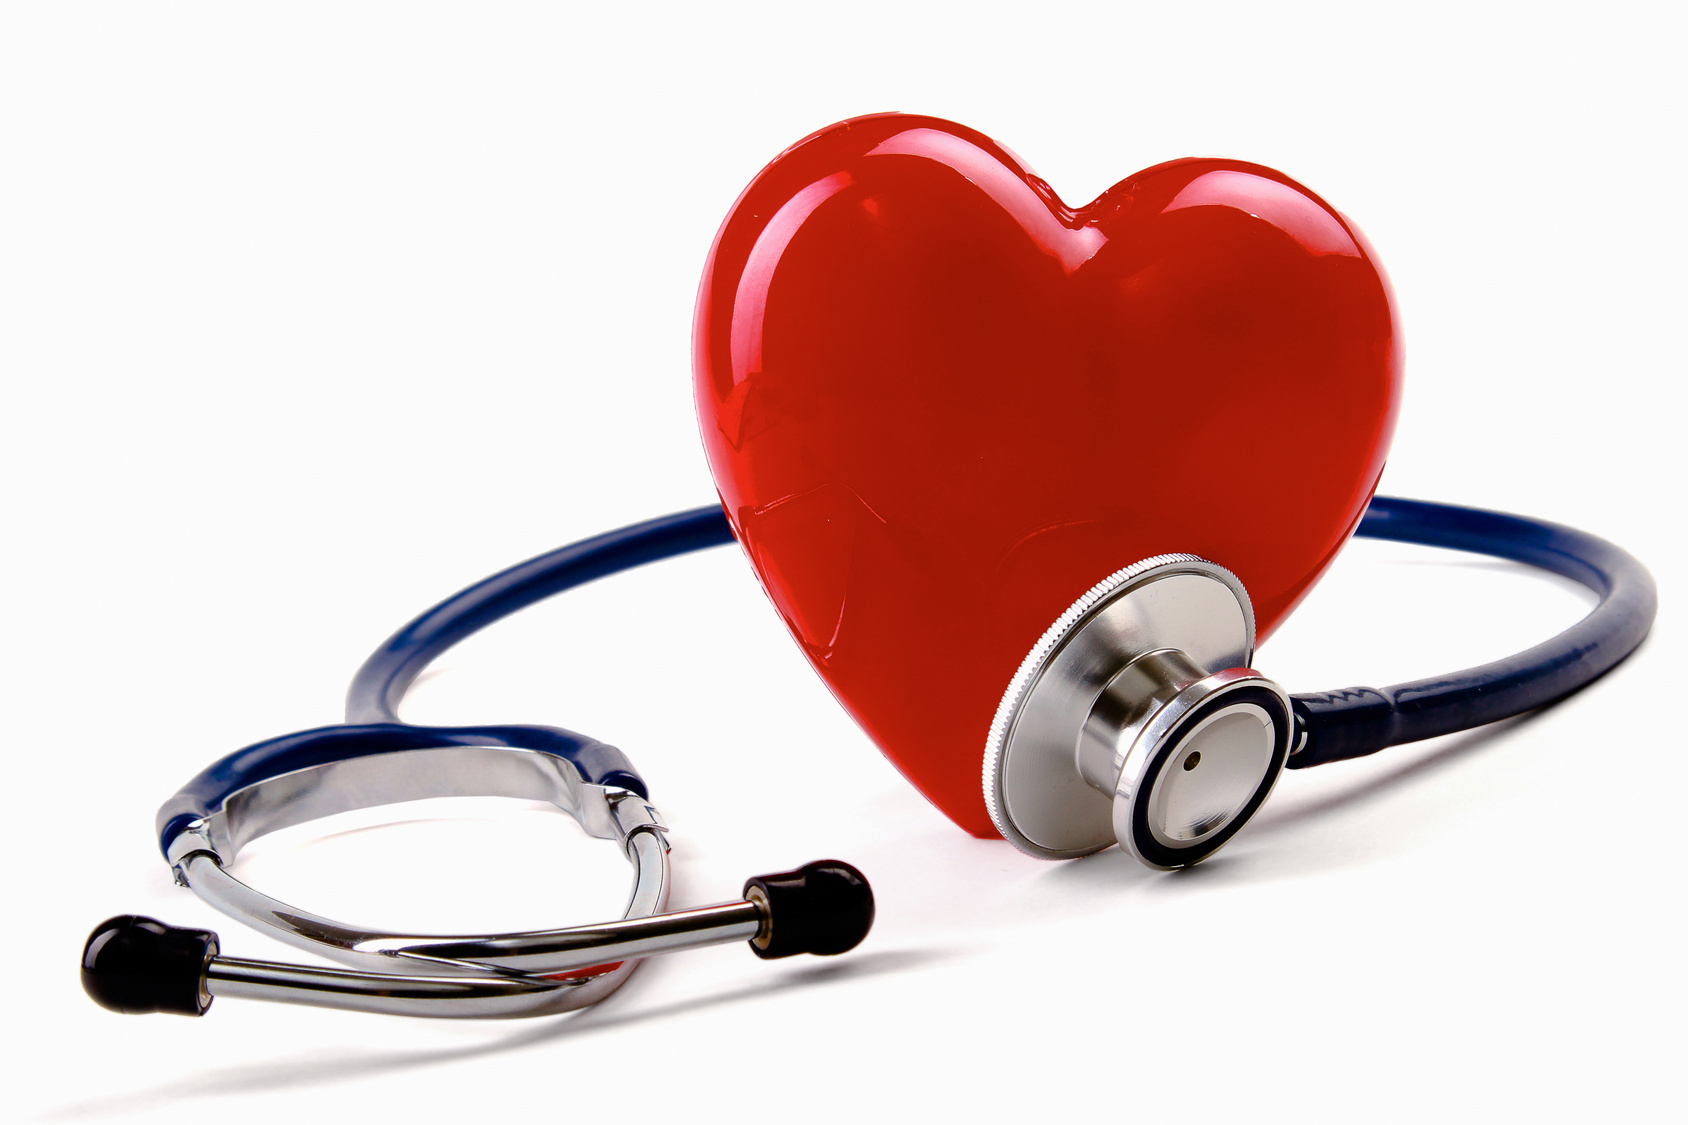 Foods That Are Good For Patients With Cardiovascular Health Issues